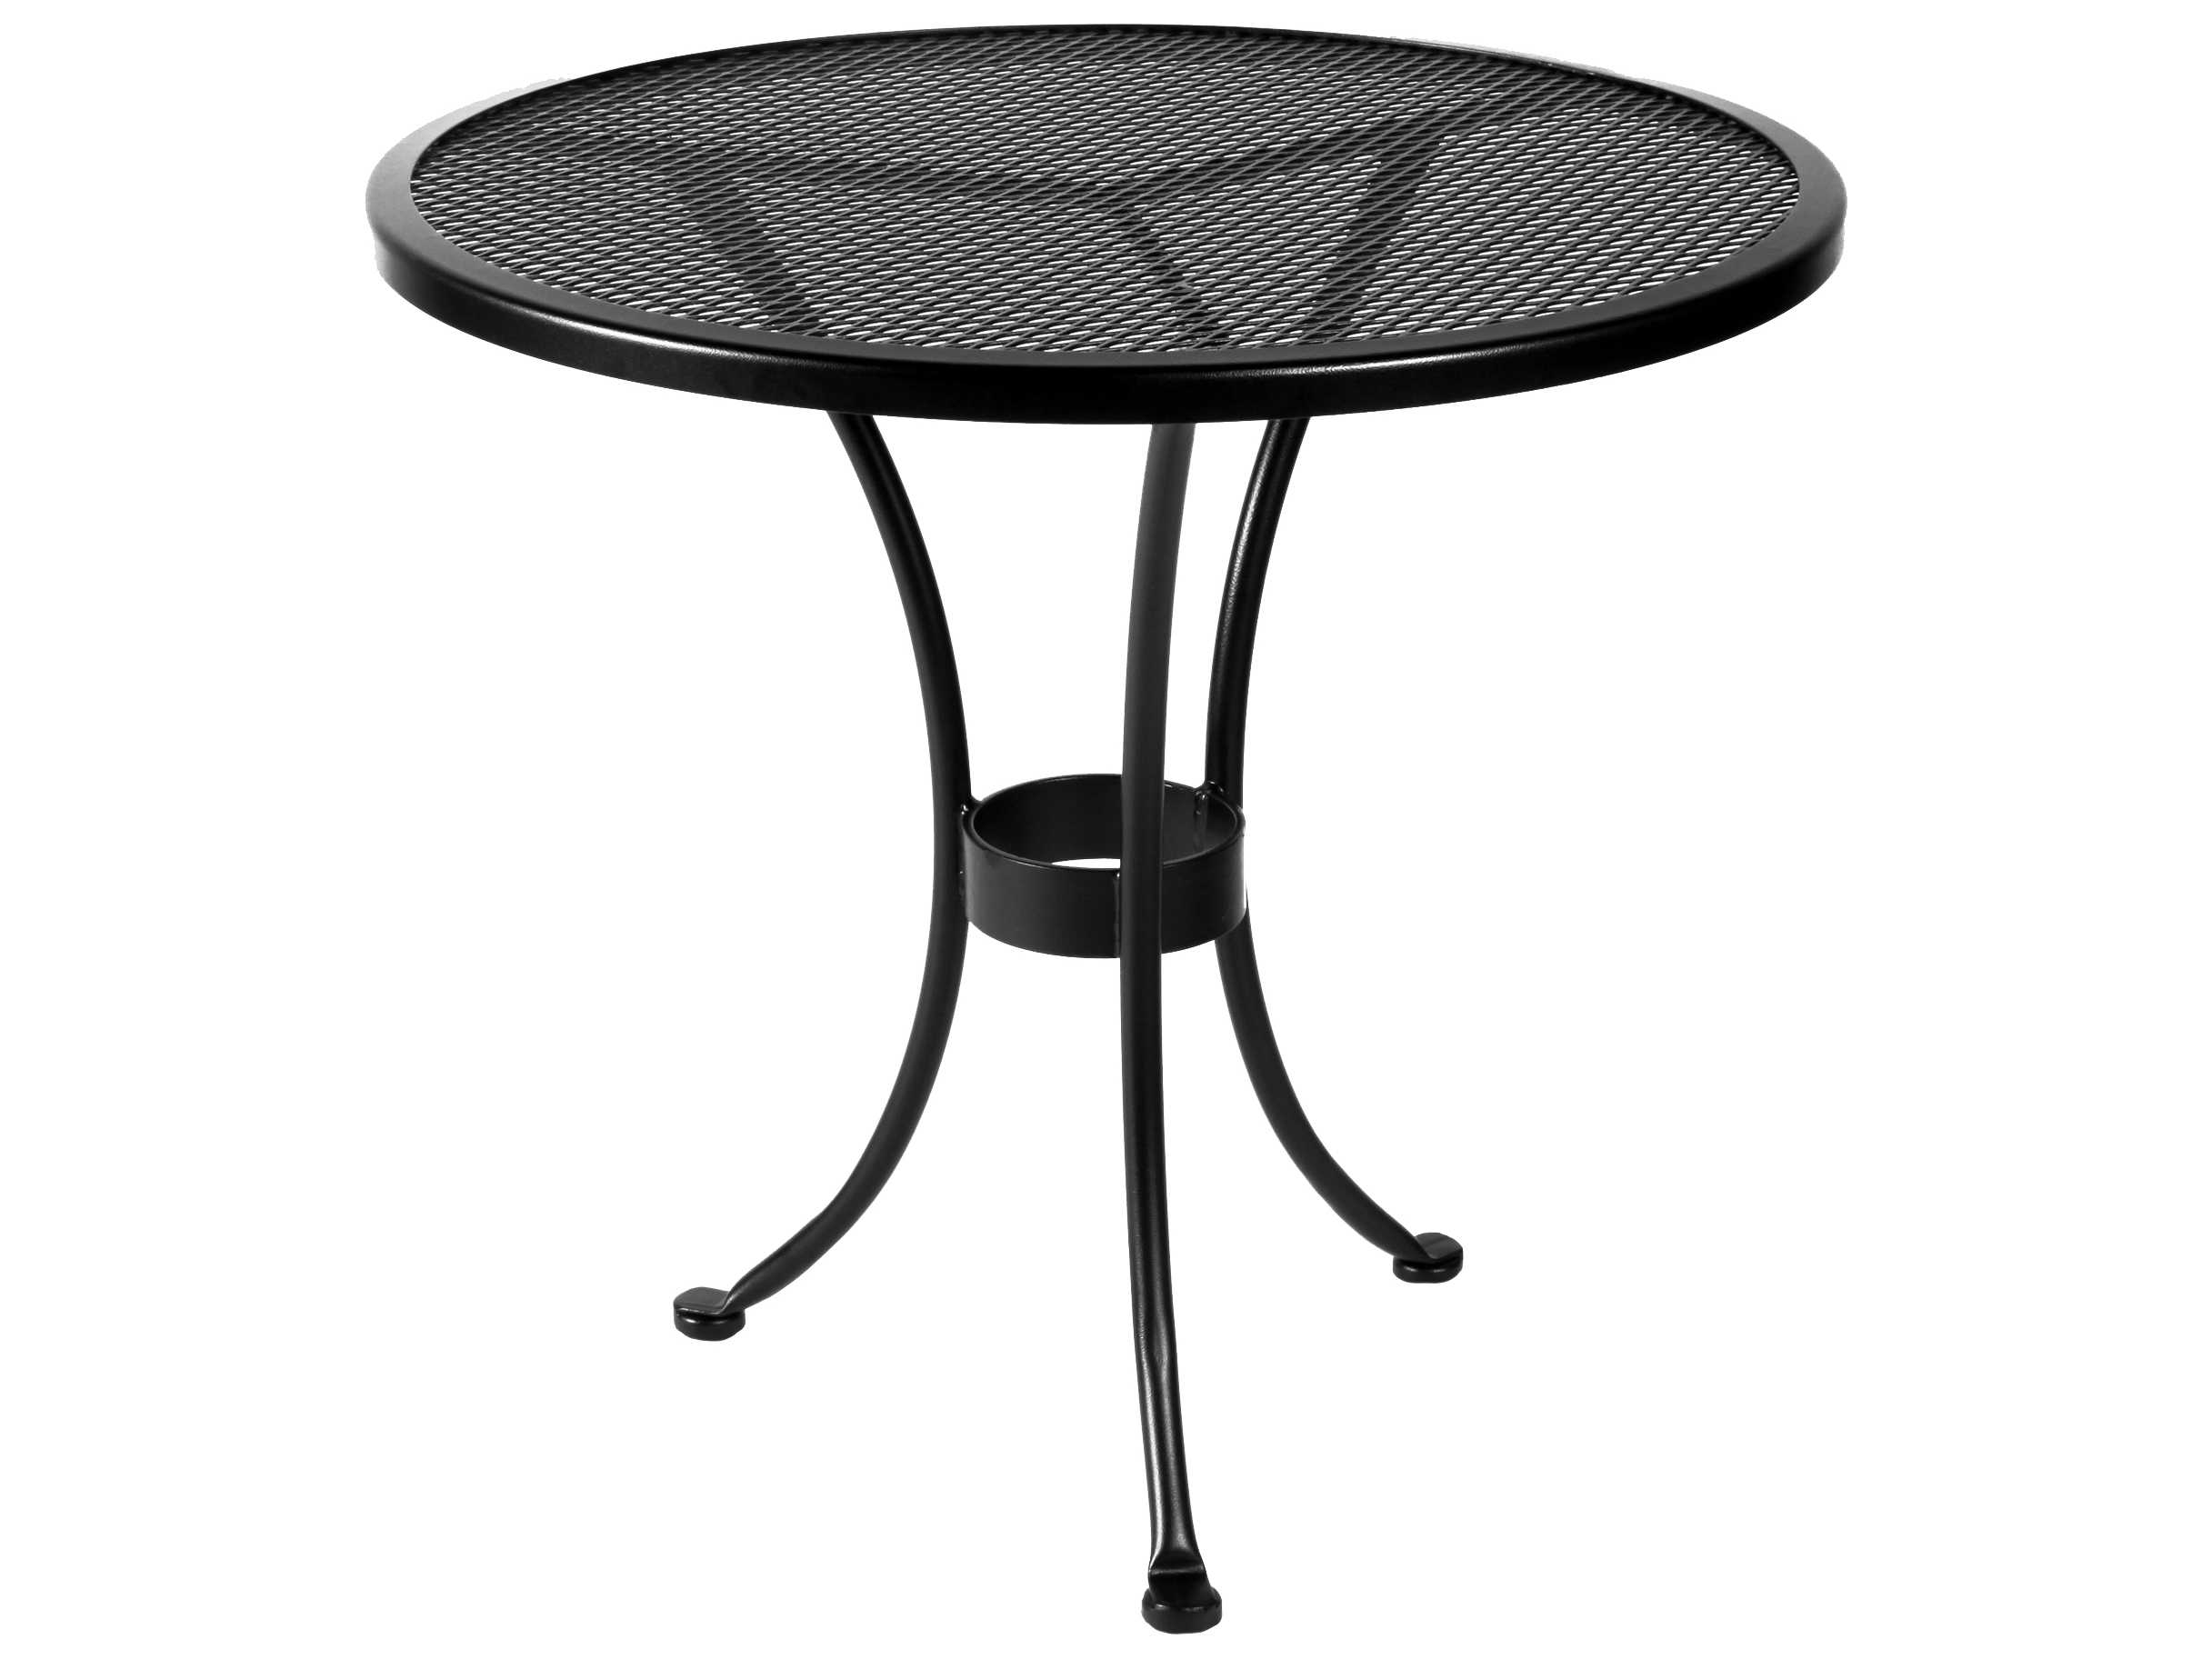 ow lee mesh wrought iron 30 round dining table 30 m. Black Bedroom Furniture Sets. Home Design Ideas